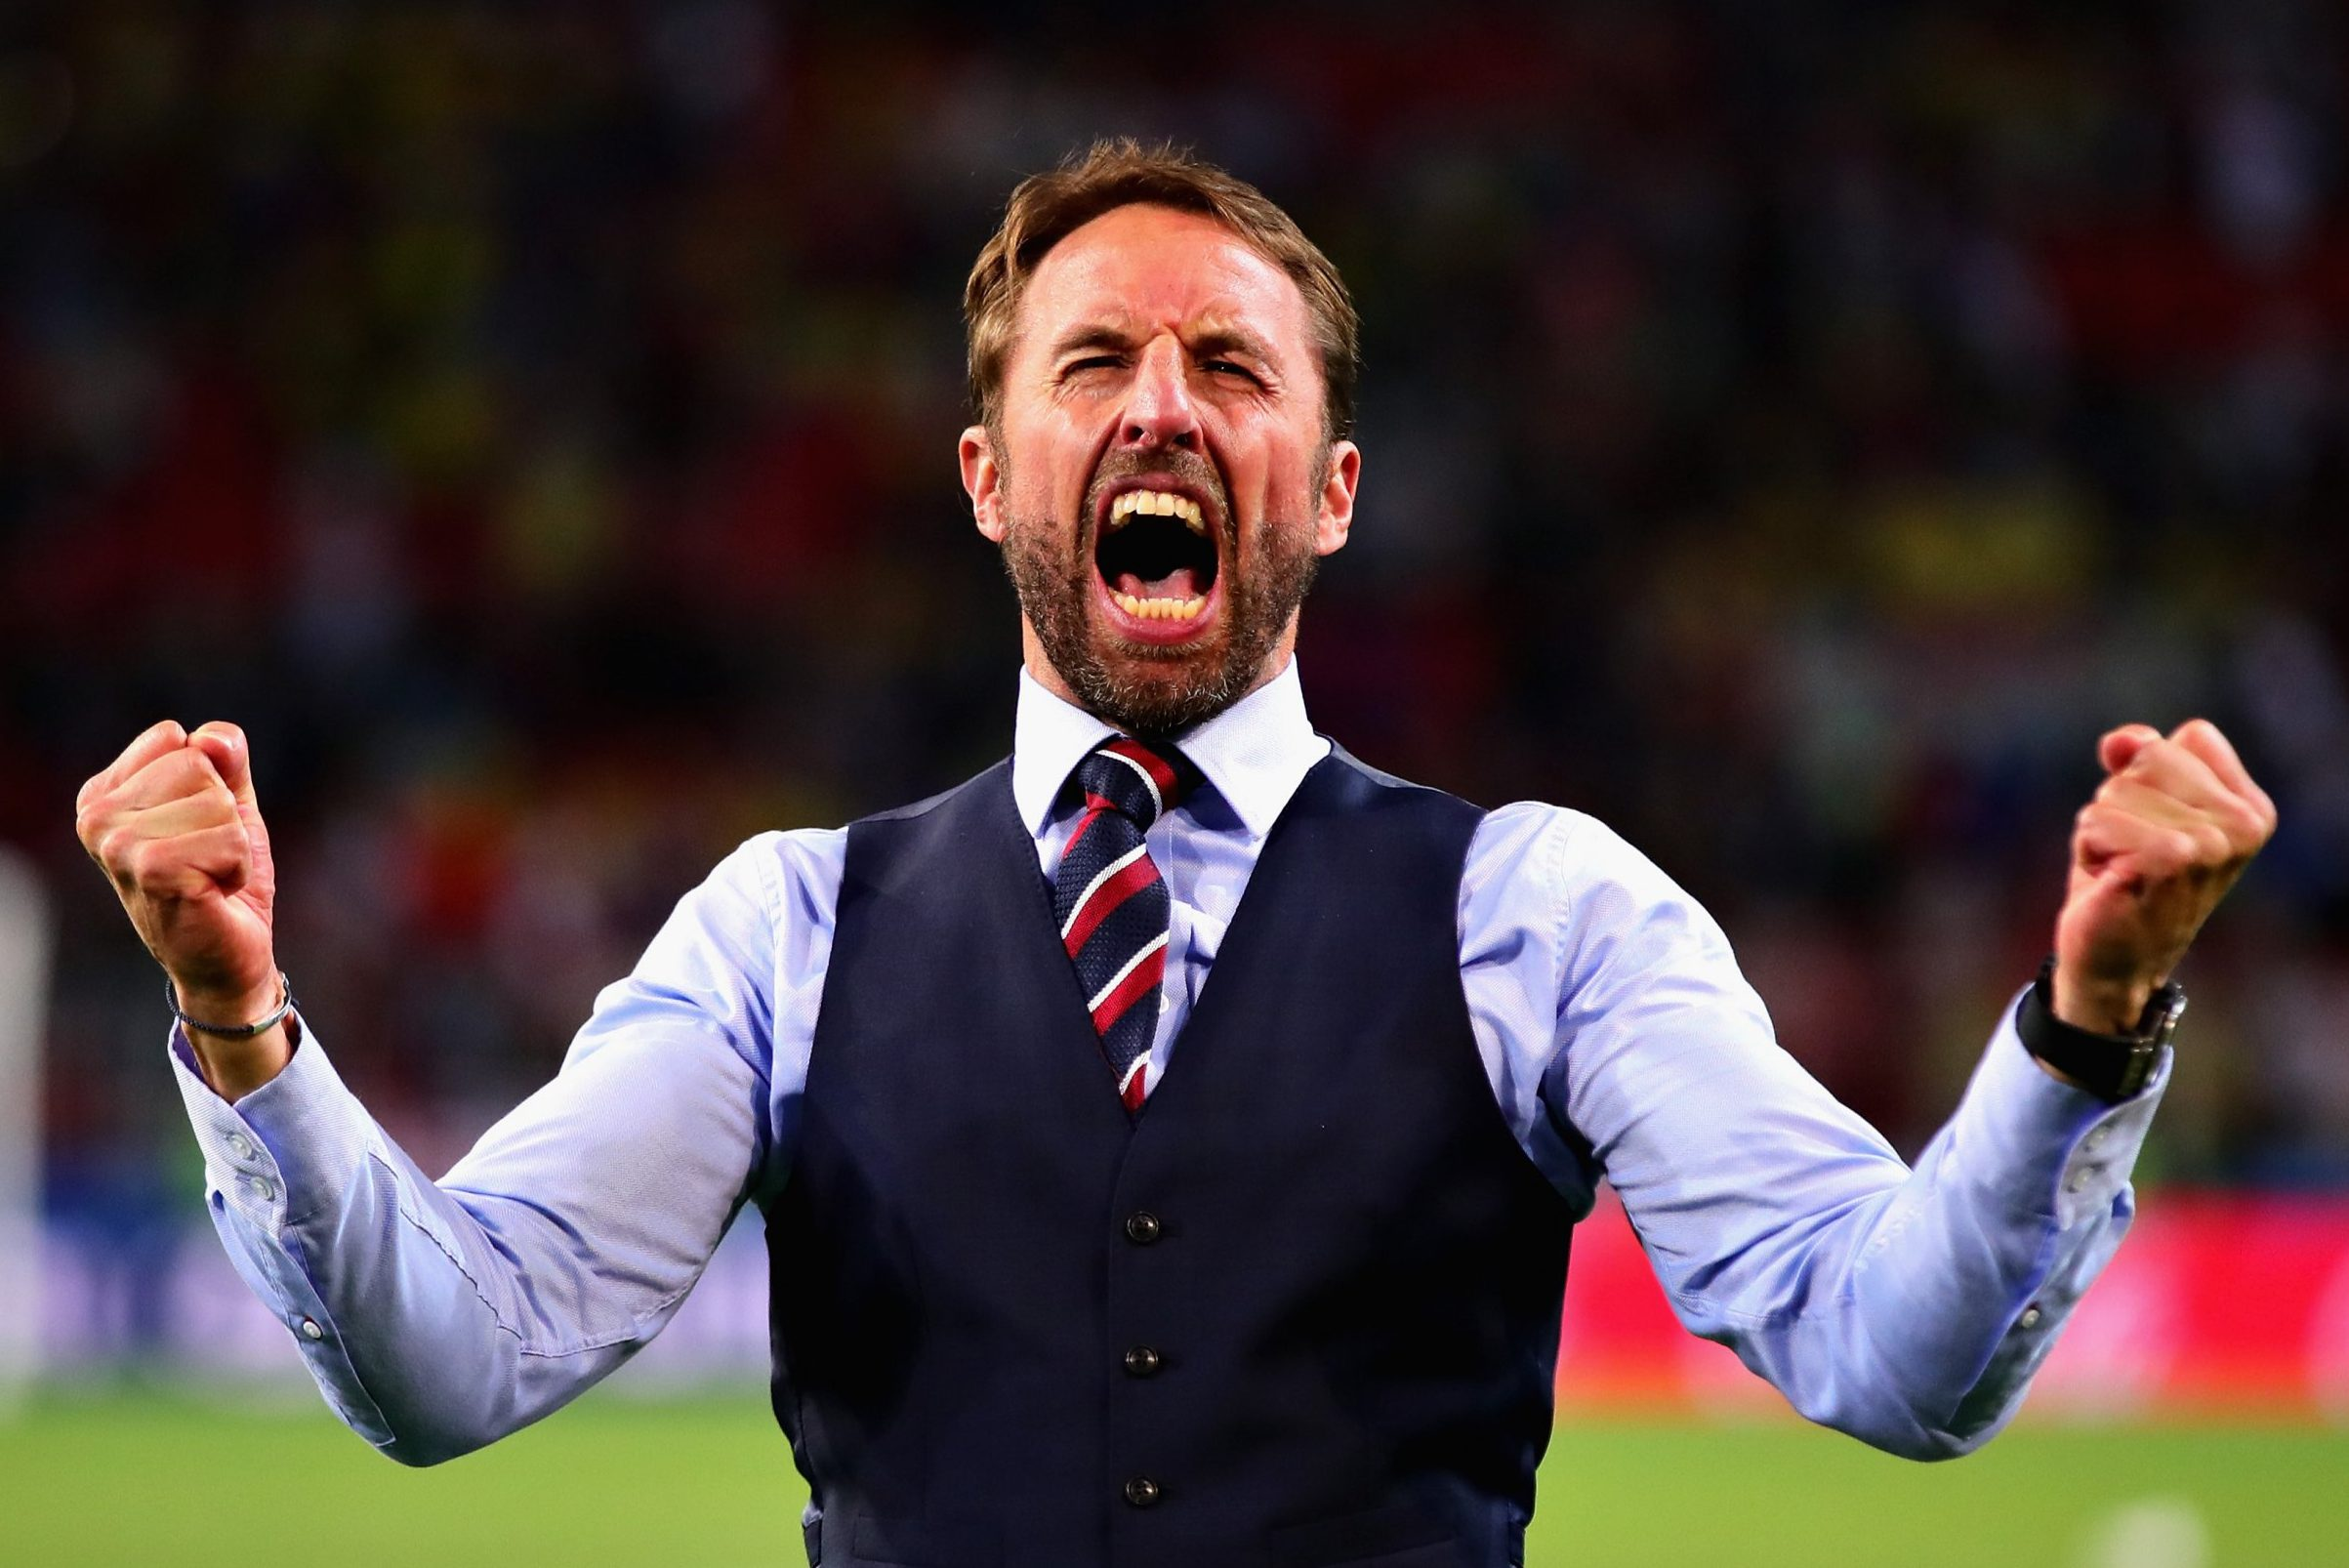 MOSCOW, RUSSIA - JULY 03: Head Coach of England Gareth Southgate celebrates after the 2018 FIFA World Cup Russia Round of 16 match between Colombia and England at Spartak Stadium on July 3, 2018 in Moscow, Russia. (Photo by Chris Brunskill/Fantasista/Getty Images)